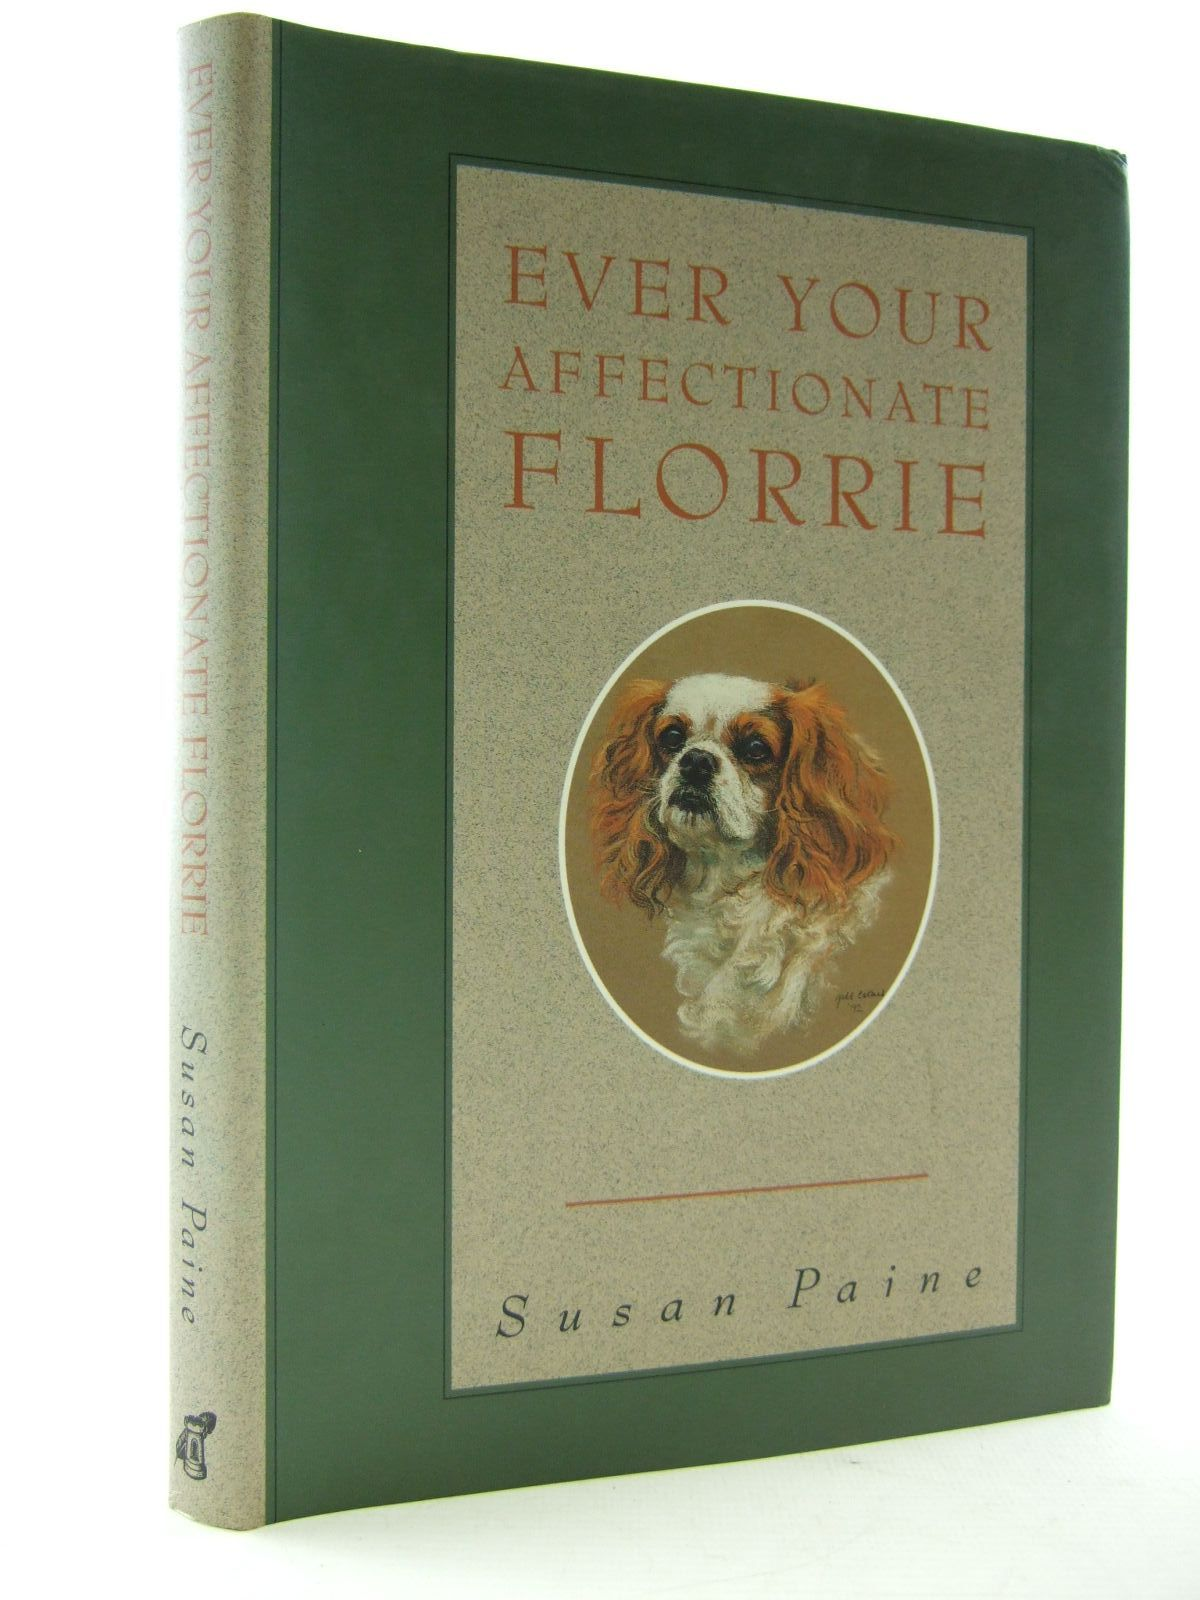 Photo of EVER YOUR AFFECTIONATE FLORRIE written by Paine, Susan illustrated by Evans, Gill published by Turret Books (STOCK CODE: 2108146)  for sale by Stella & Rose's Books